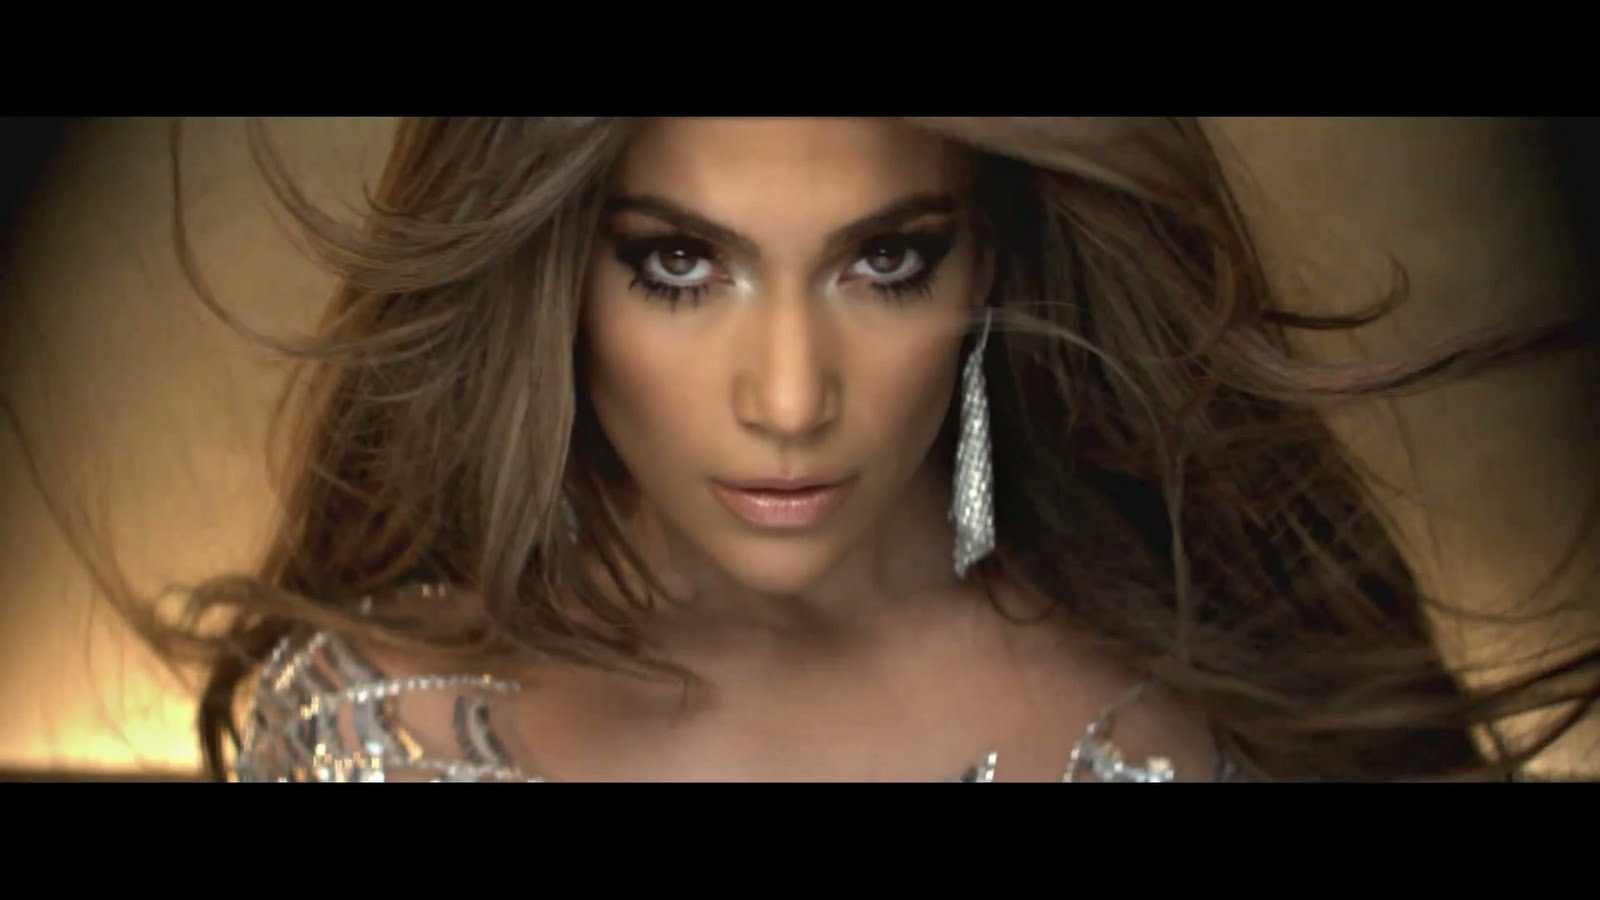 http://3.bp.blogspot.com/-411mdZ4HfzQ/Tch_VO5YOxI/AAAAAAAAA1s/s__JatfrlZ8/s1600/Jennifer_lopez_on_the_floor_ft_pitbull028.jpg